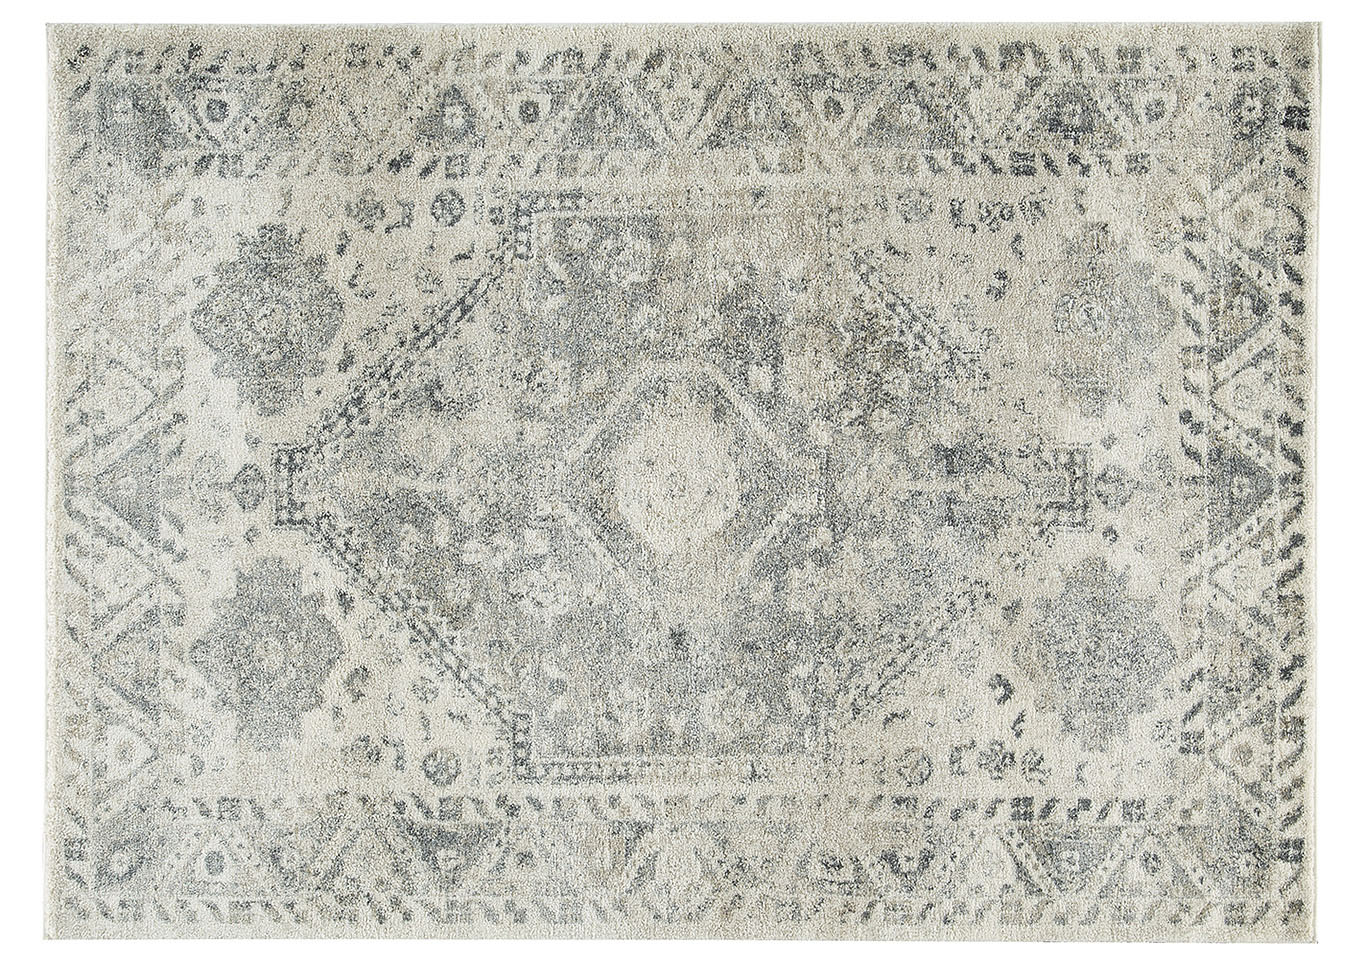 Precia Gray/Cream Large Rug,Signature Design By Ashley